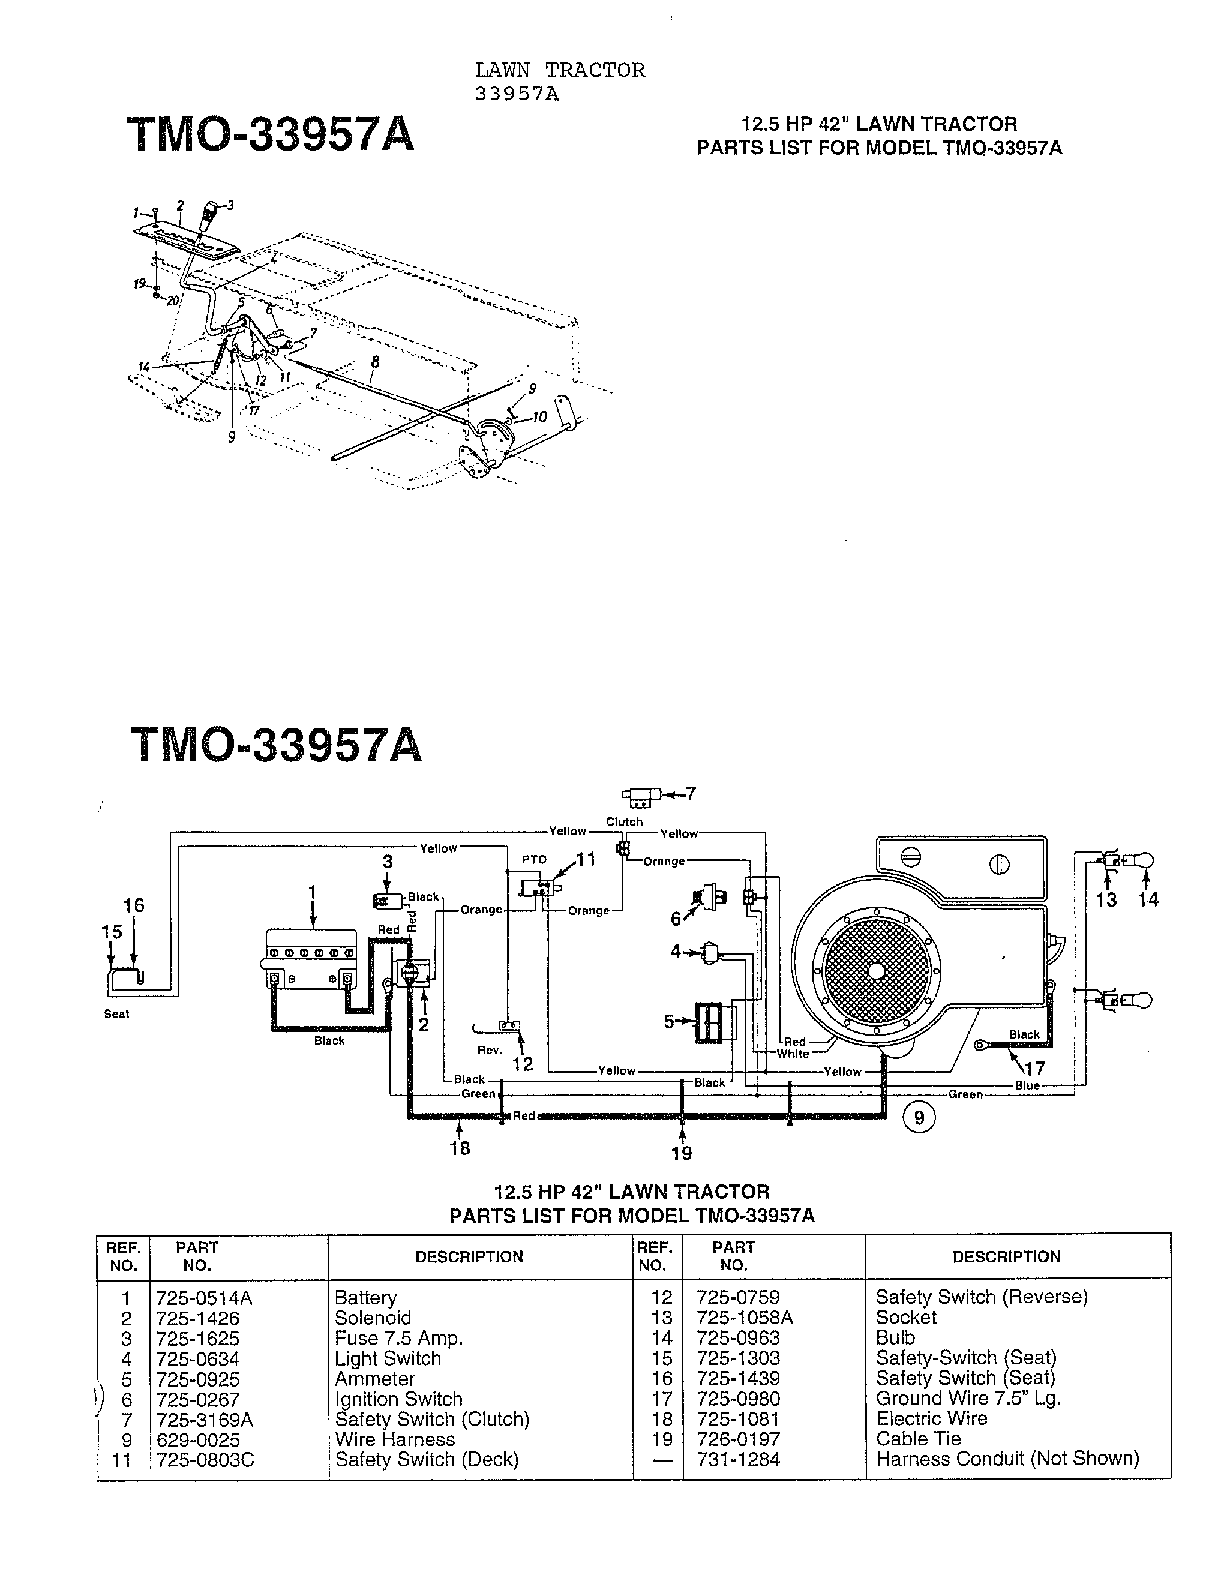 hight resolution of mtd 10 hp wiring diagram wiring library 10 hp tecumseh engine specs yardman 10 5 hp briggs and stratton wiring diagram